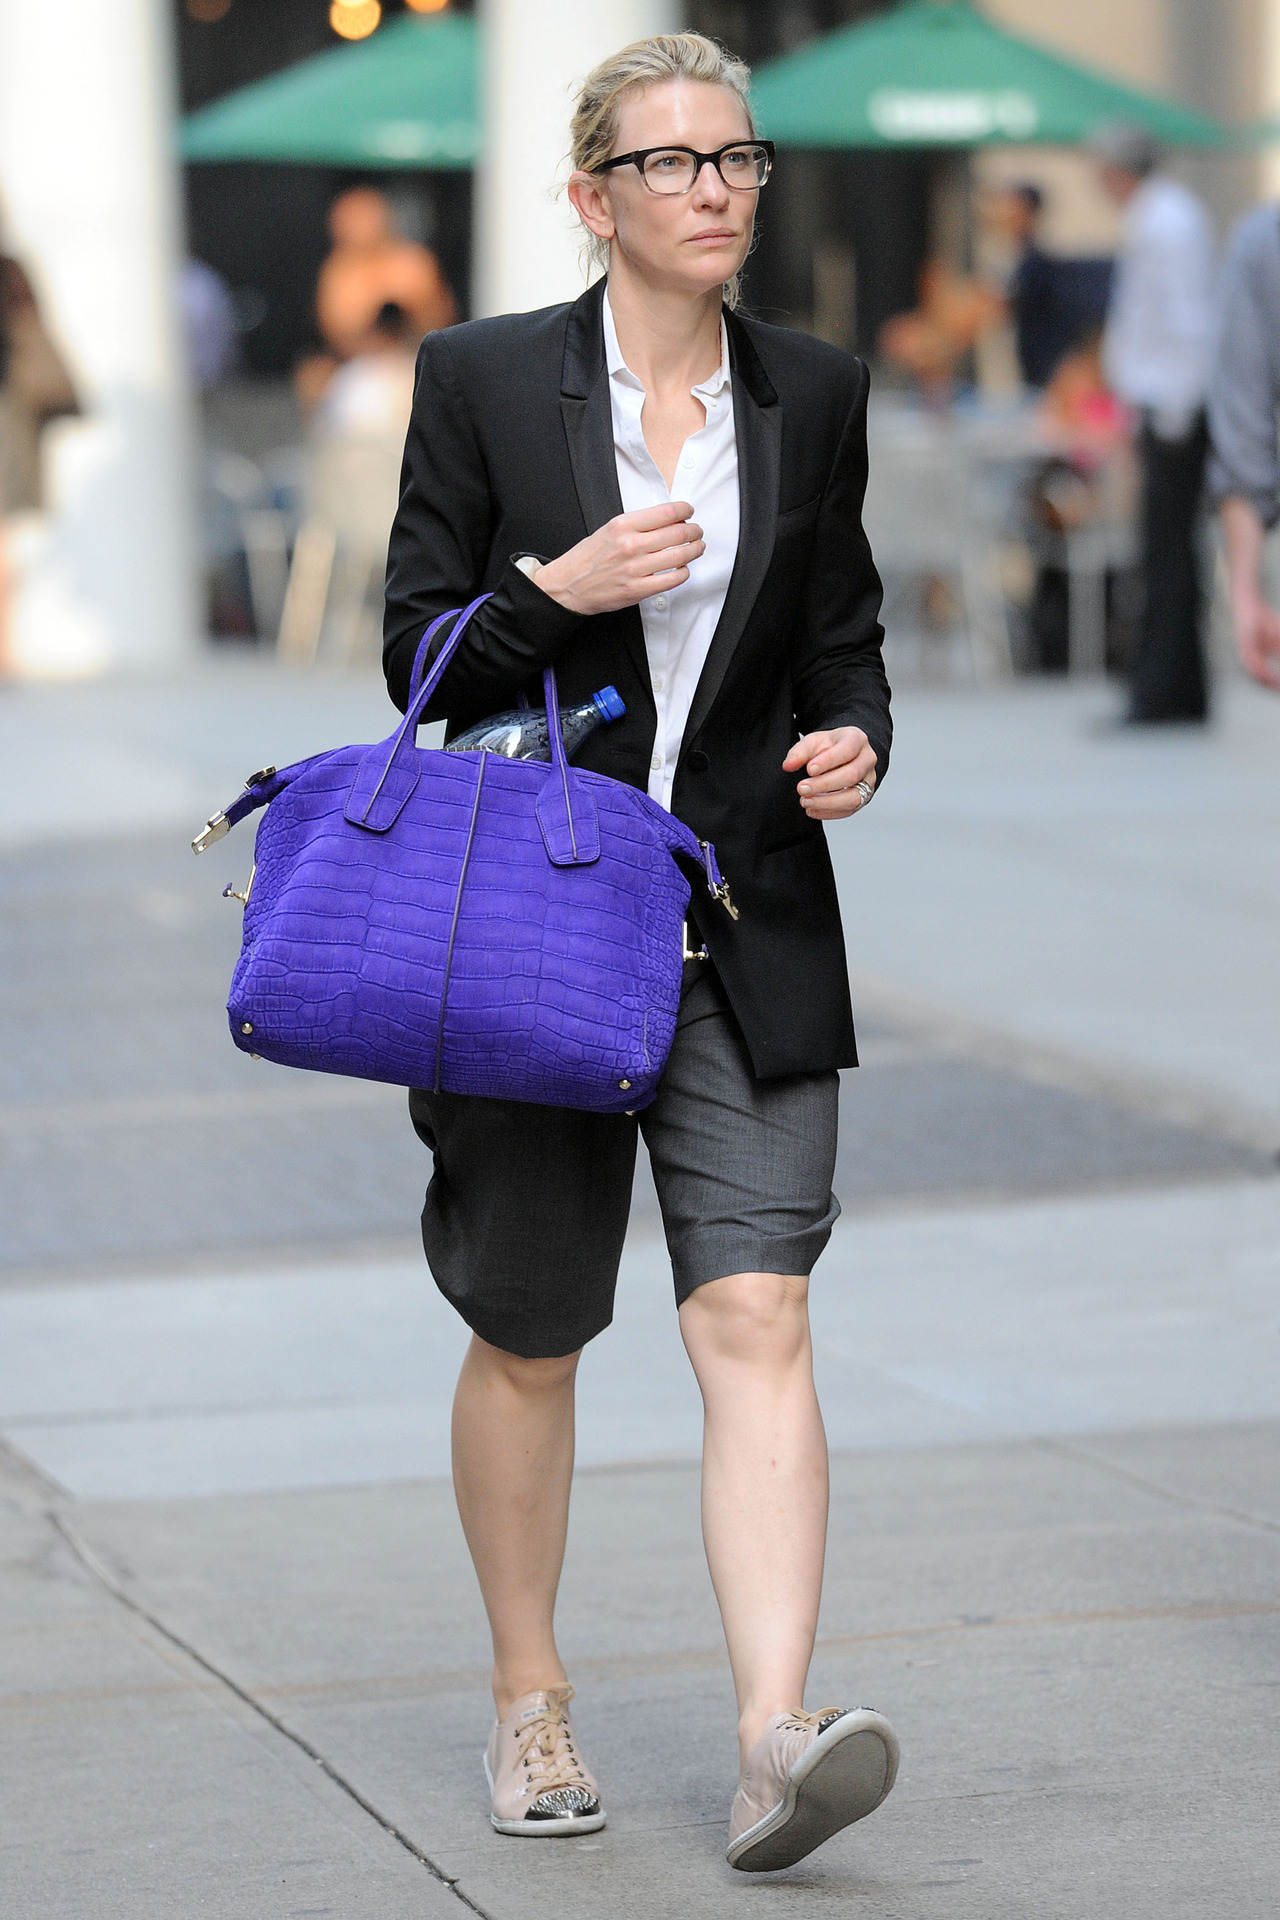 Cate Blanchett in NYC, July 23rd BEAUTIFUL FIERCE QUEEN